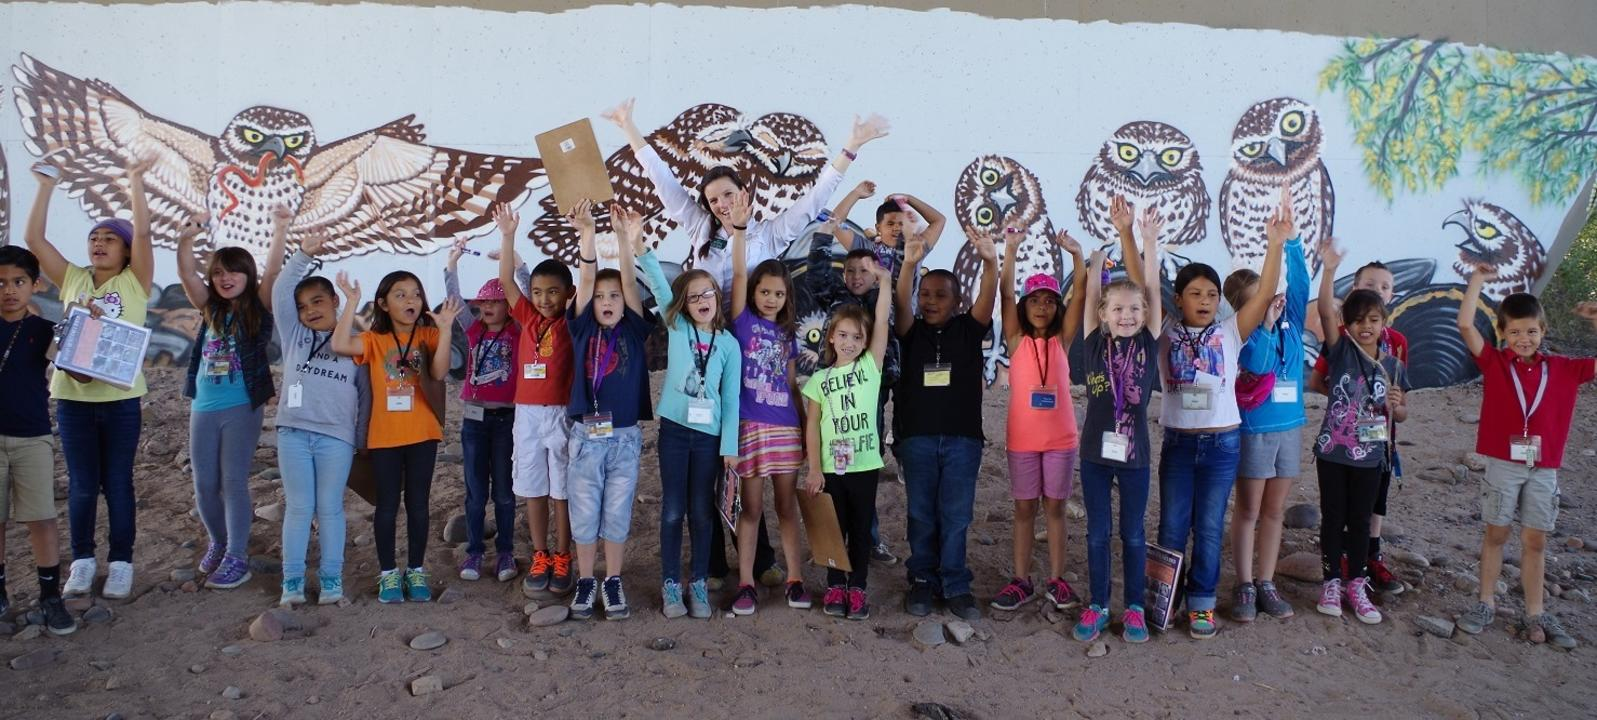 A line of students pose in front of a Burrowing Owl mural under a bridge.